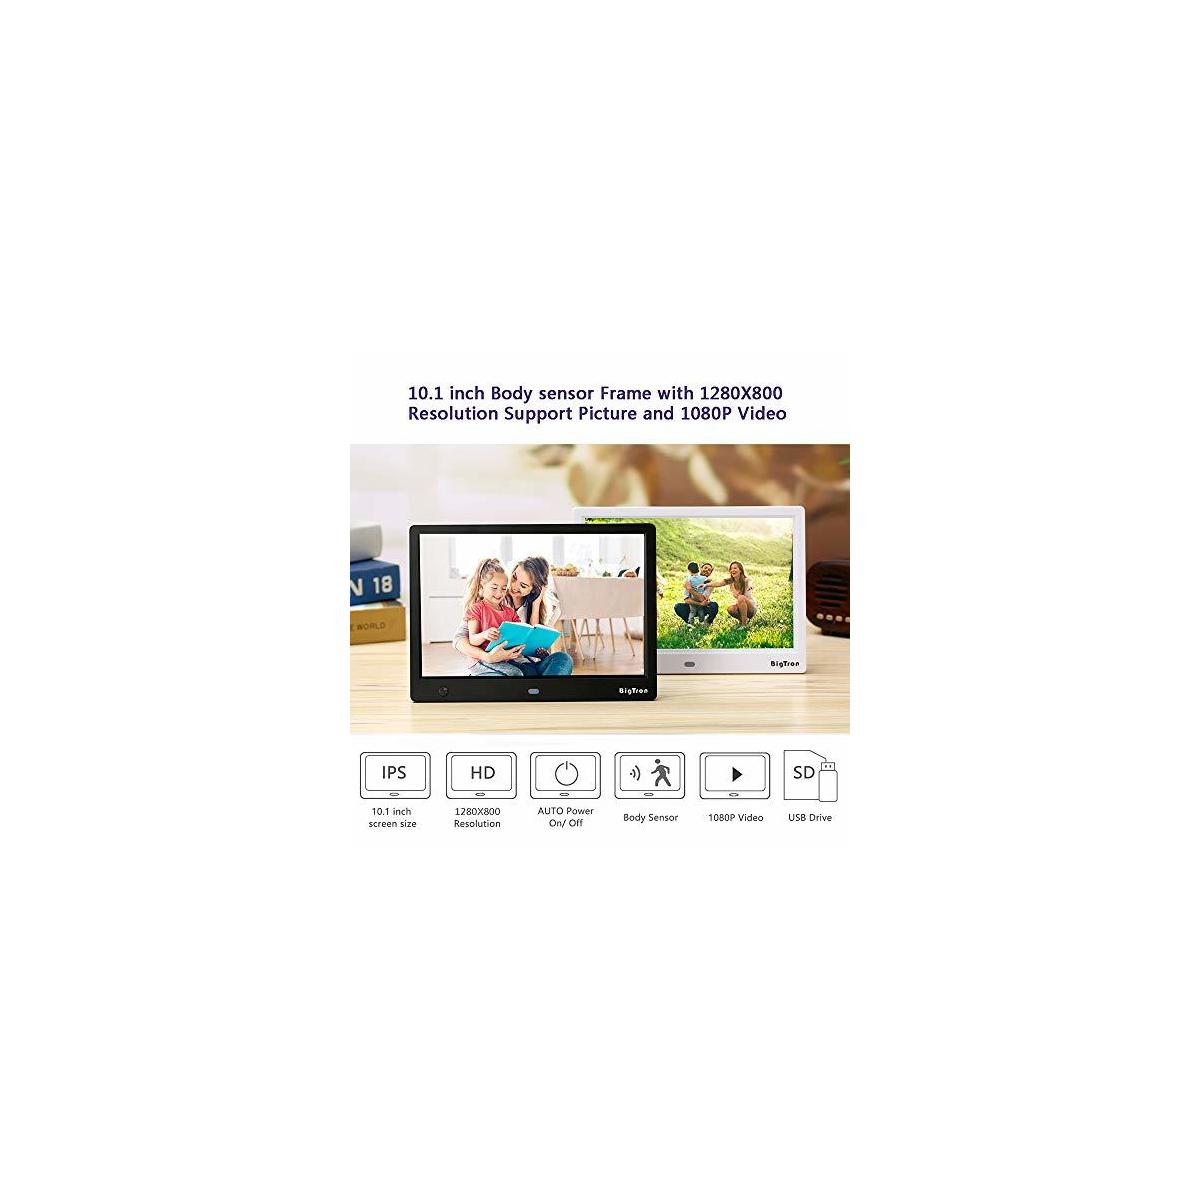 10.1 Inch 1280X800 Resolutin Digital Photo Frame (Non-WiFi) Include 32GB SD Card, HD Video Frame 16:9 300cd/㎡IPS Screen,Motion Sensor, USB and SD Card Slots with Remote Control-Black